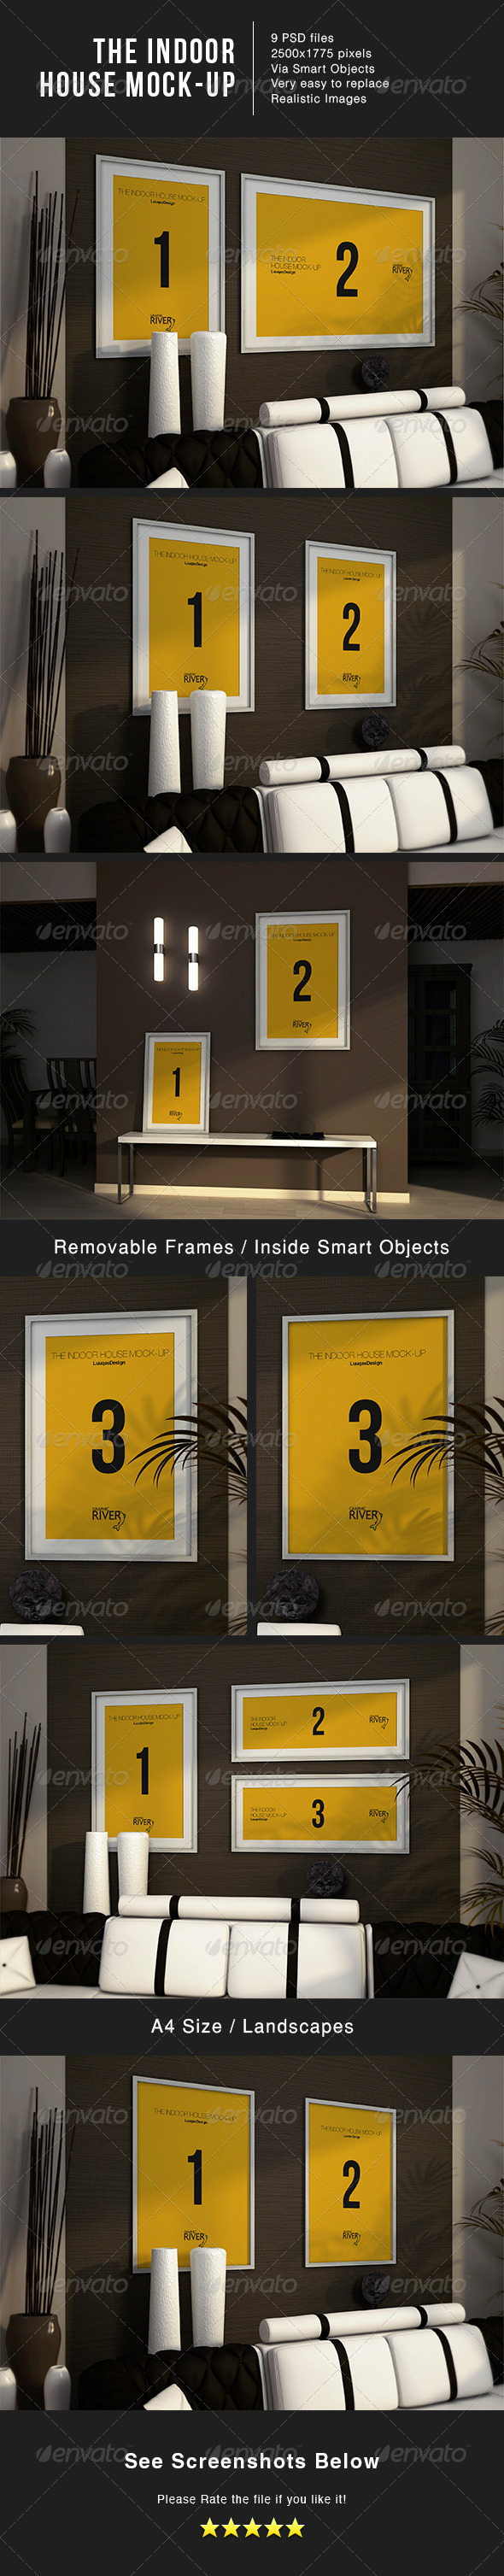 GraphicRiver The Indoor House Mock-Up 5637696